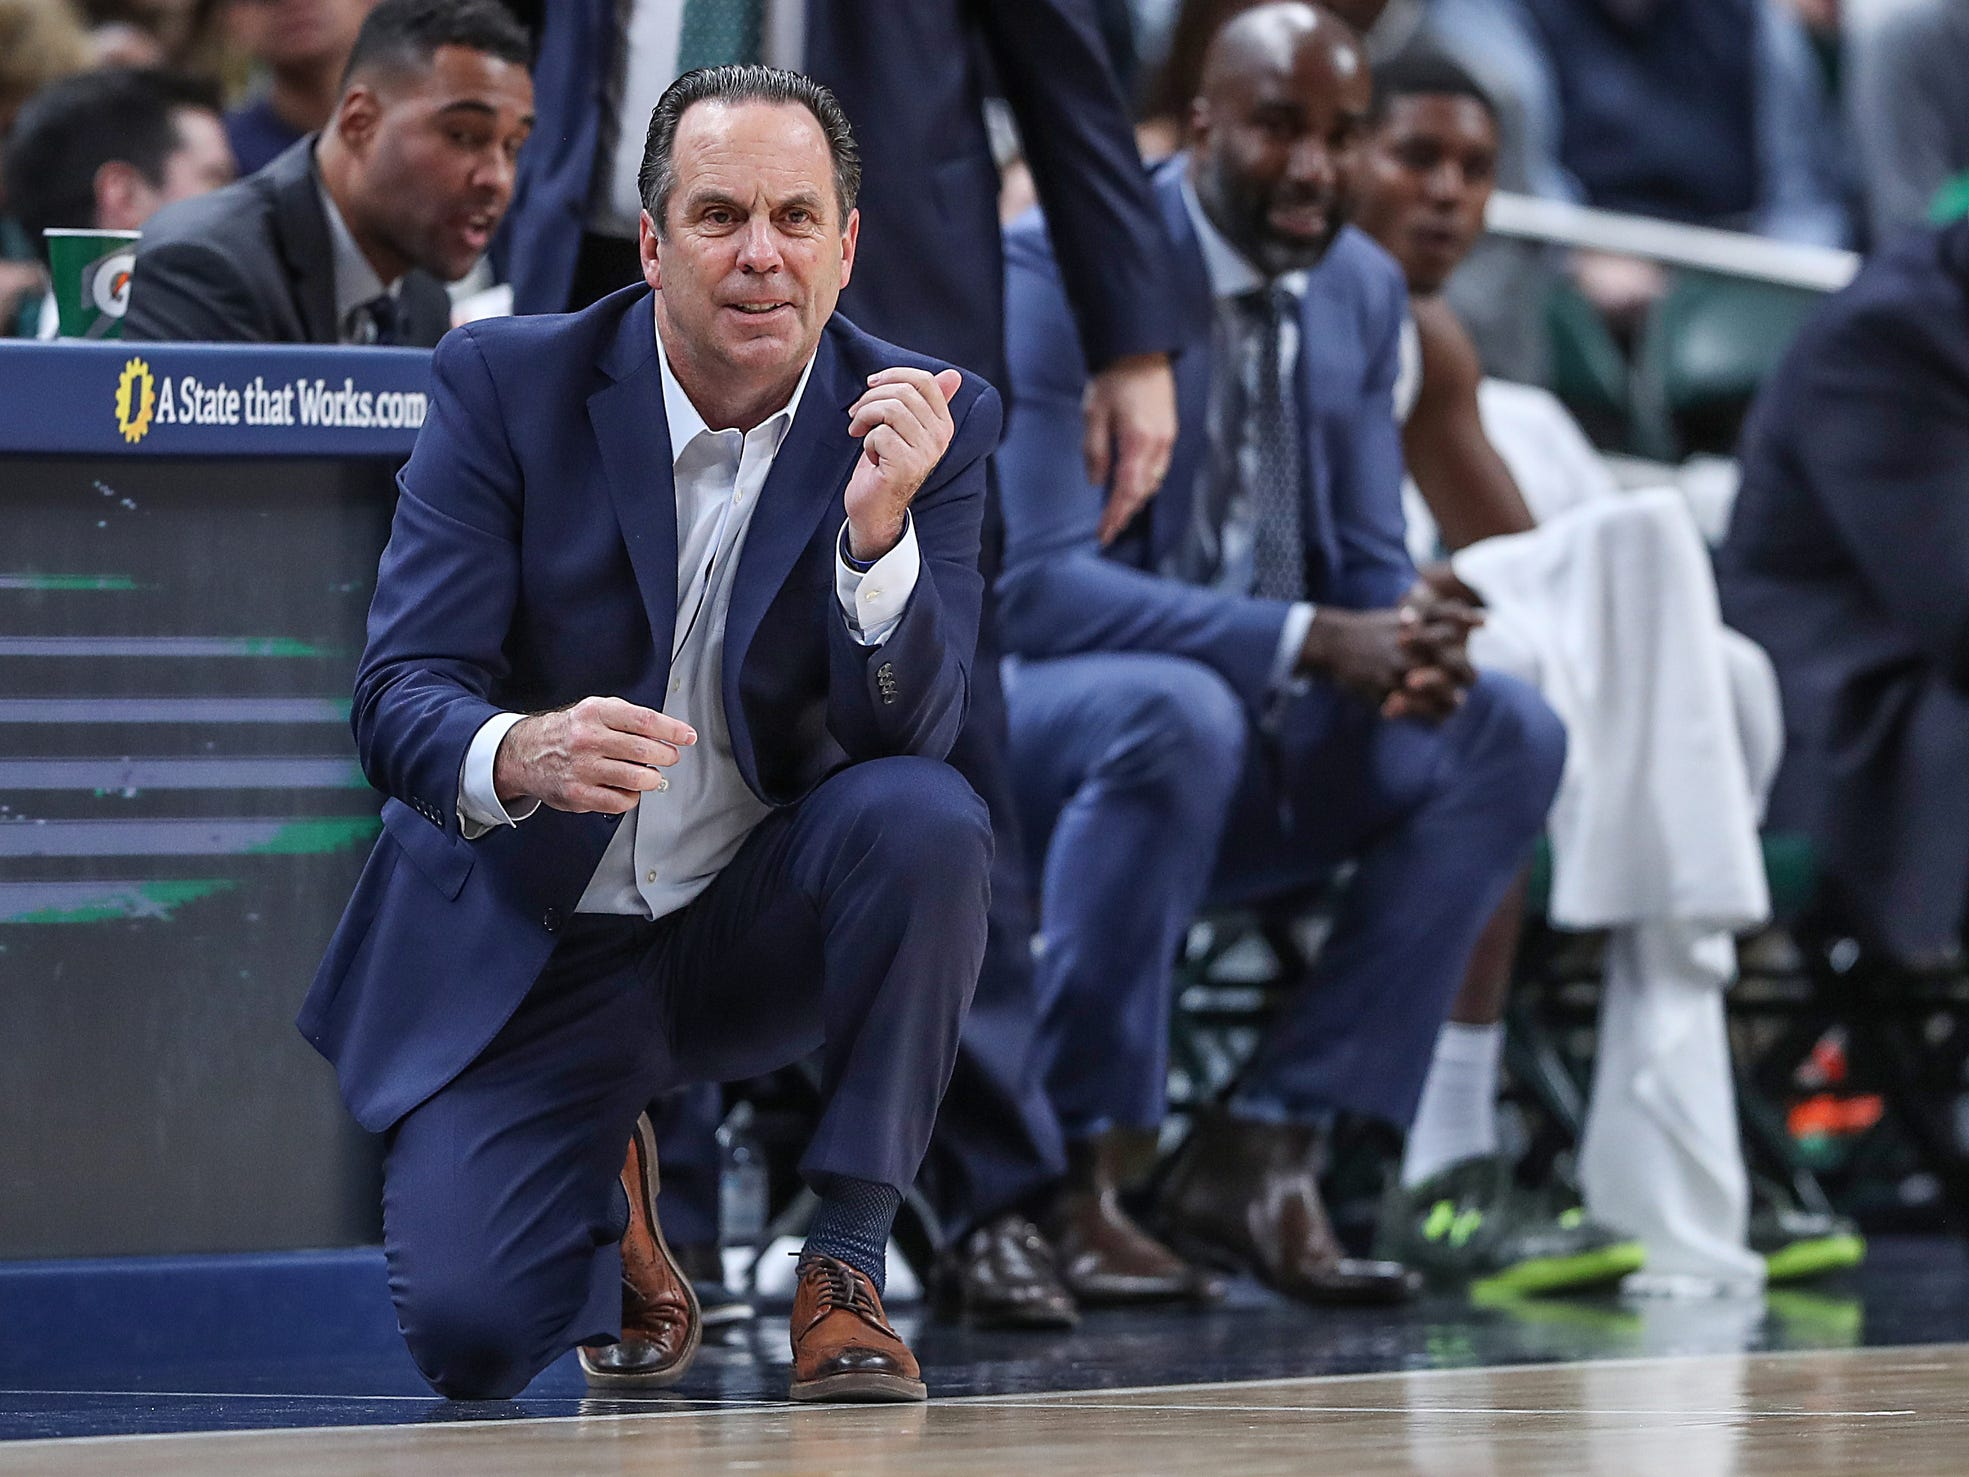 Notre Dame Fighting Irish head coach Mike Brey watches game play in the second half of the Crossroads Classic game between Purdue and Notre Dame at Bankers Life Fieldhouse in Indiananpolis, Saturday, Dec. 15, 2018. Notre Dame won, 88-80.